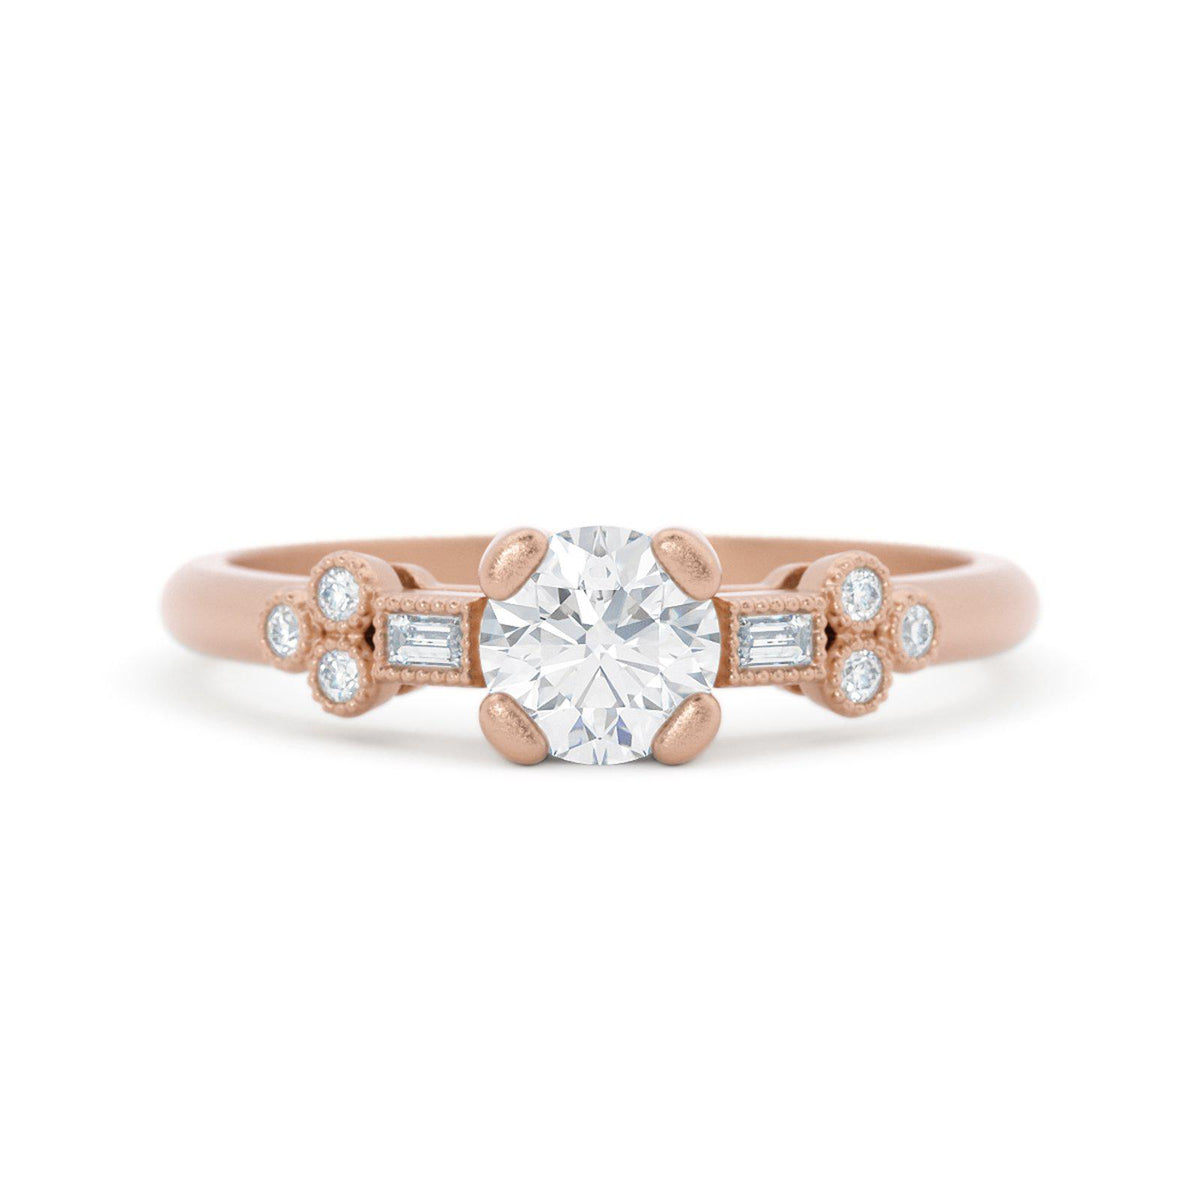 Norah Mae Dainty Diamond Ring Rose Gold